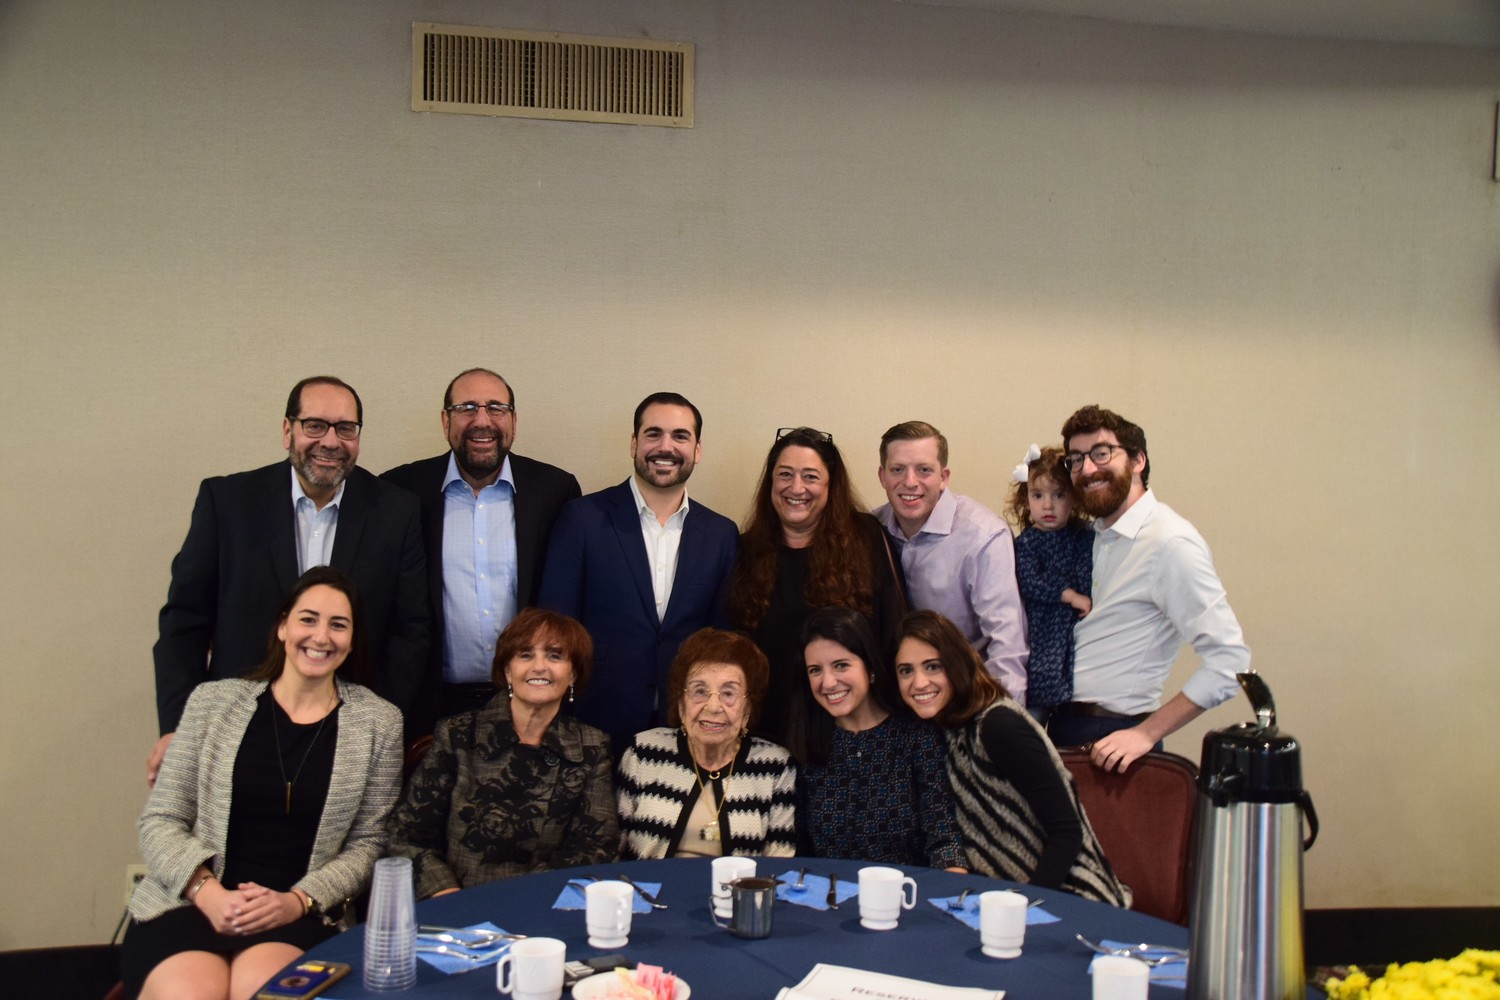 Four generations of Greenbaums gathered to celebrate a century of life for Laura, back row, Mark, Steven, Harrison, and Pamela Greenbaum, Yoni Kranzler, Avery and Josh Stein, front row, Dena, Nyla, and Laura Greenbaum, Lauren Stein, and Devon Kranzler.